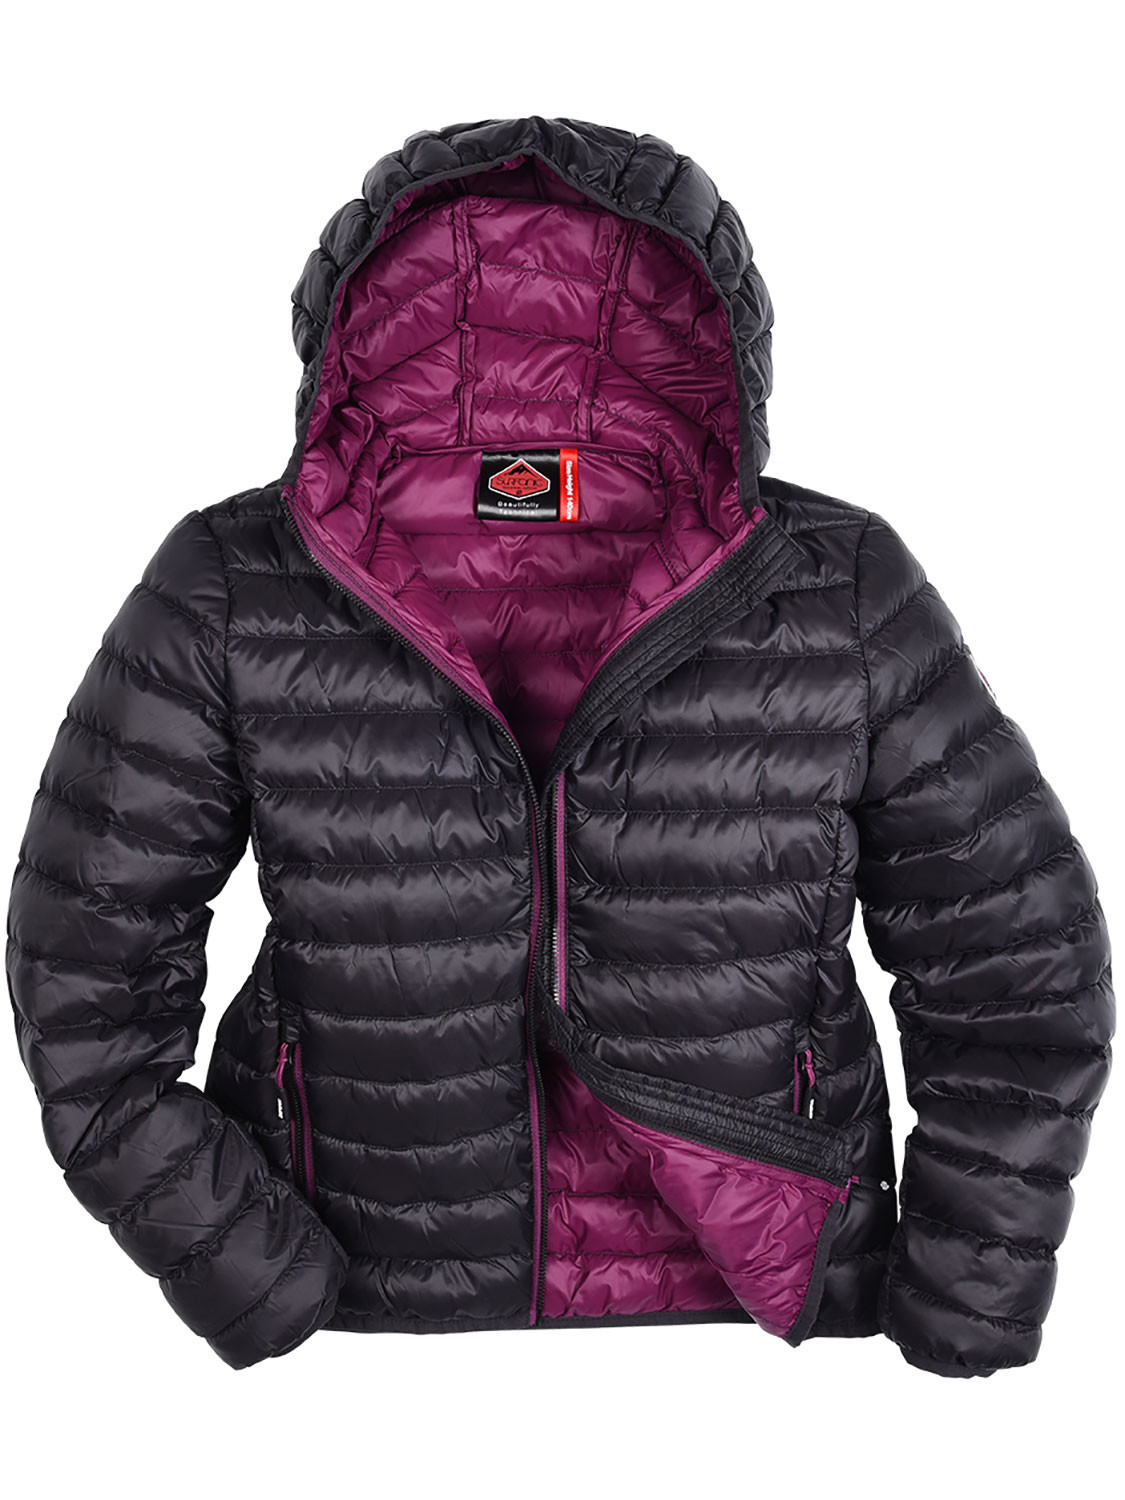 Dove Lightweight Down Jacket